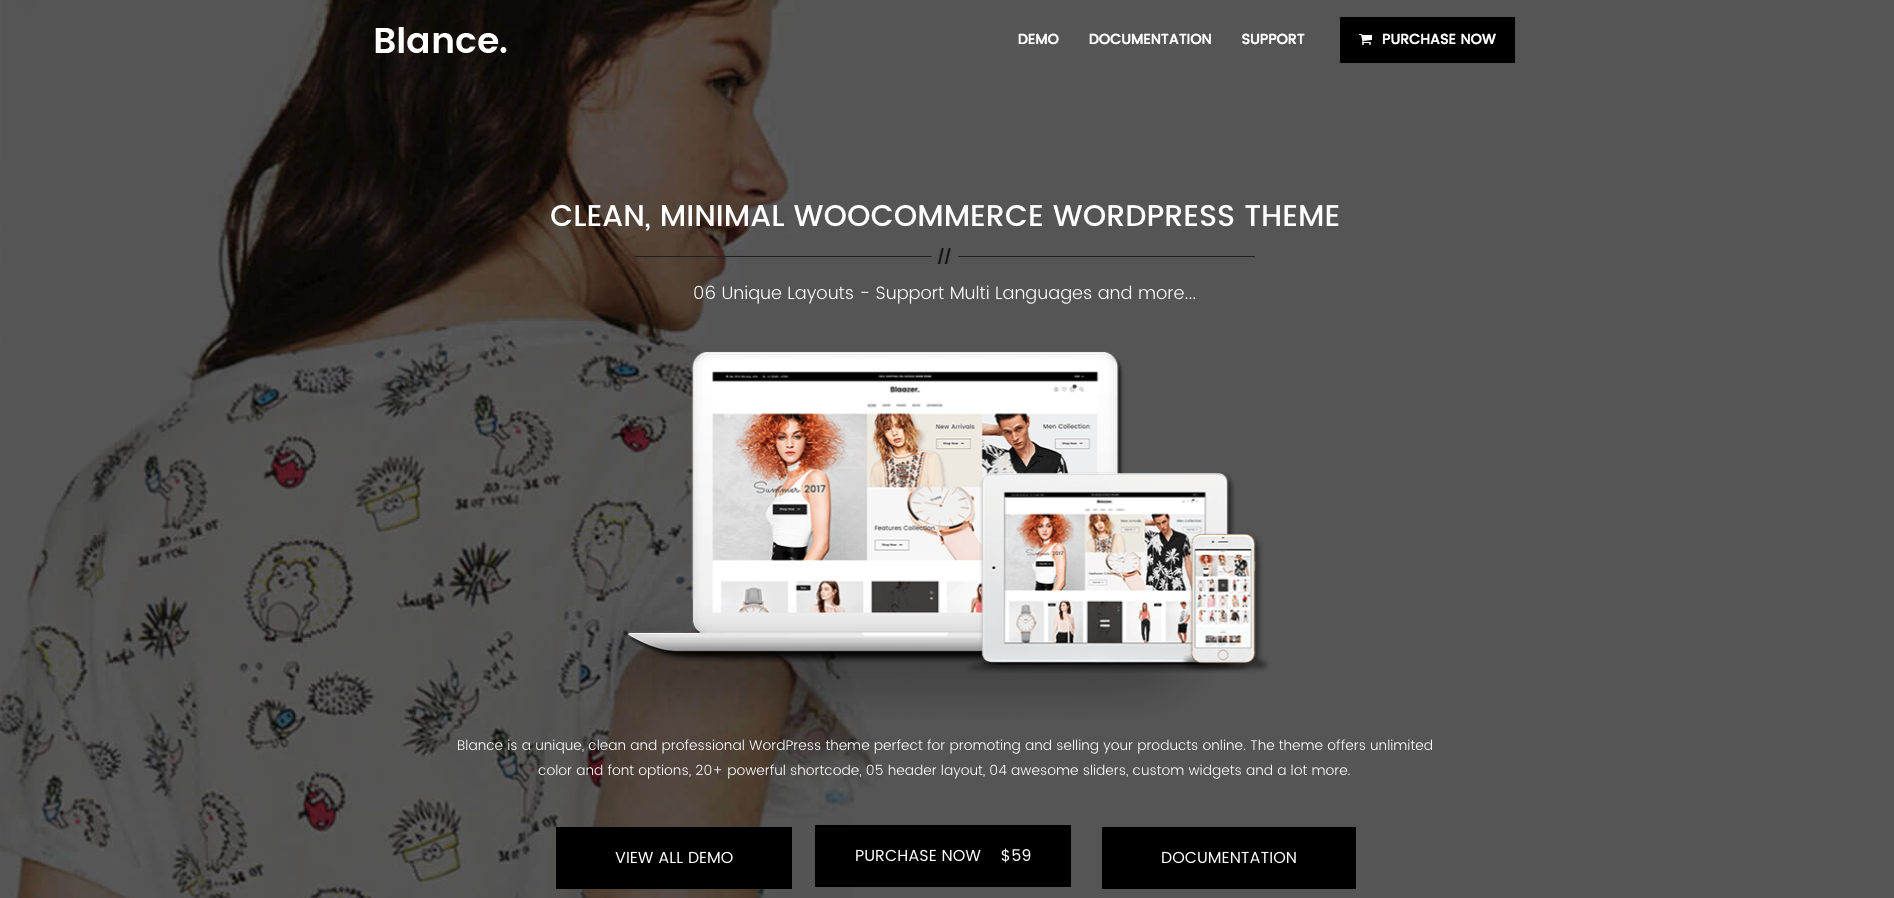 Best Minimalist eCommerce WordPress Theme 2018